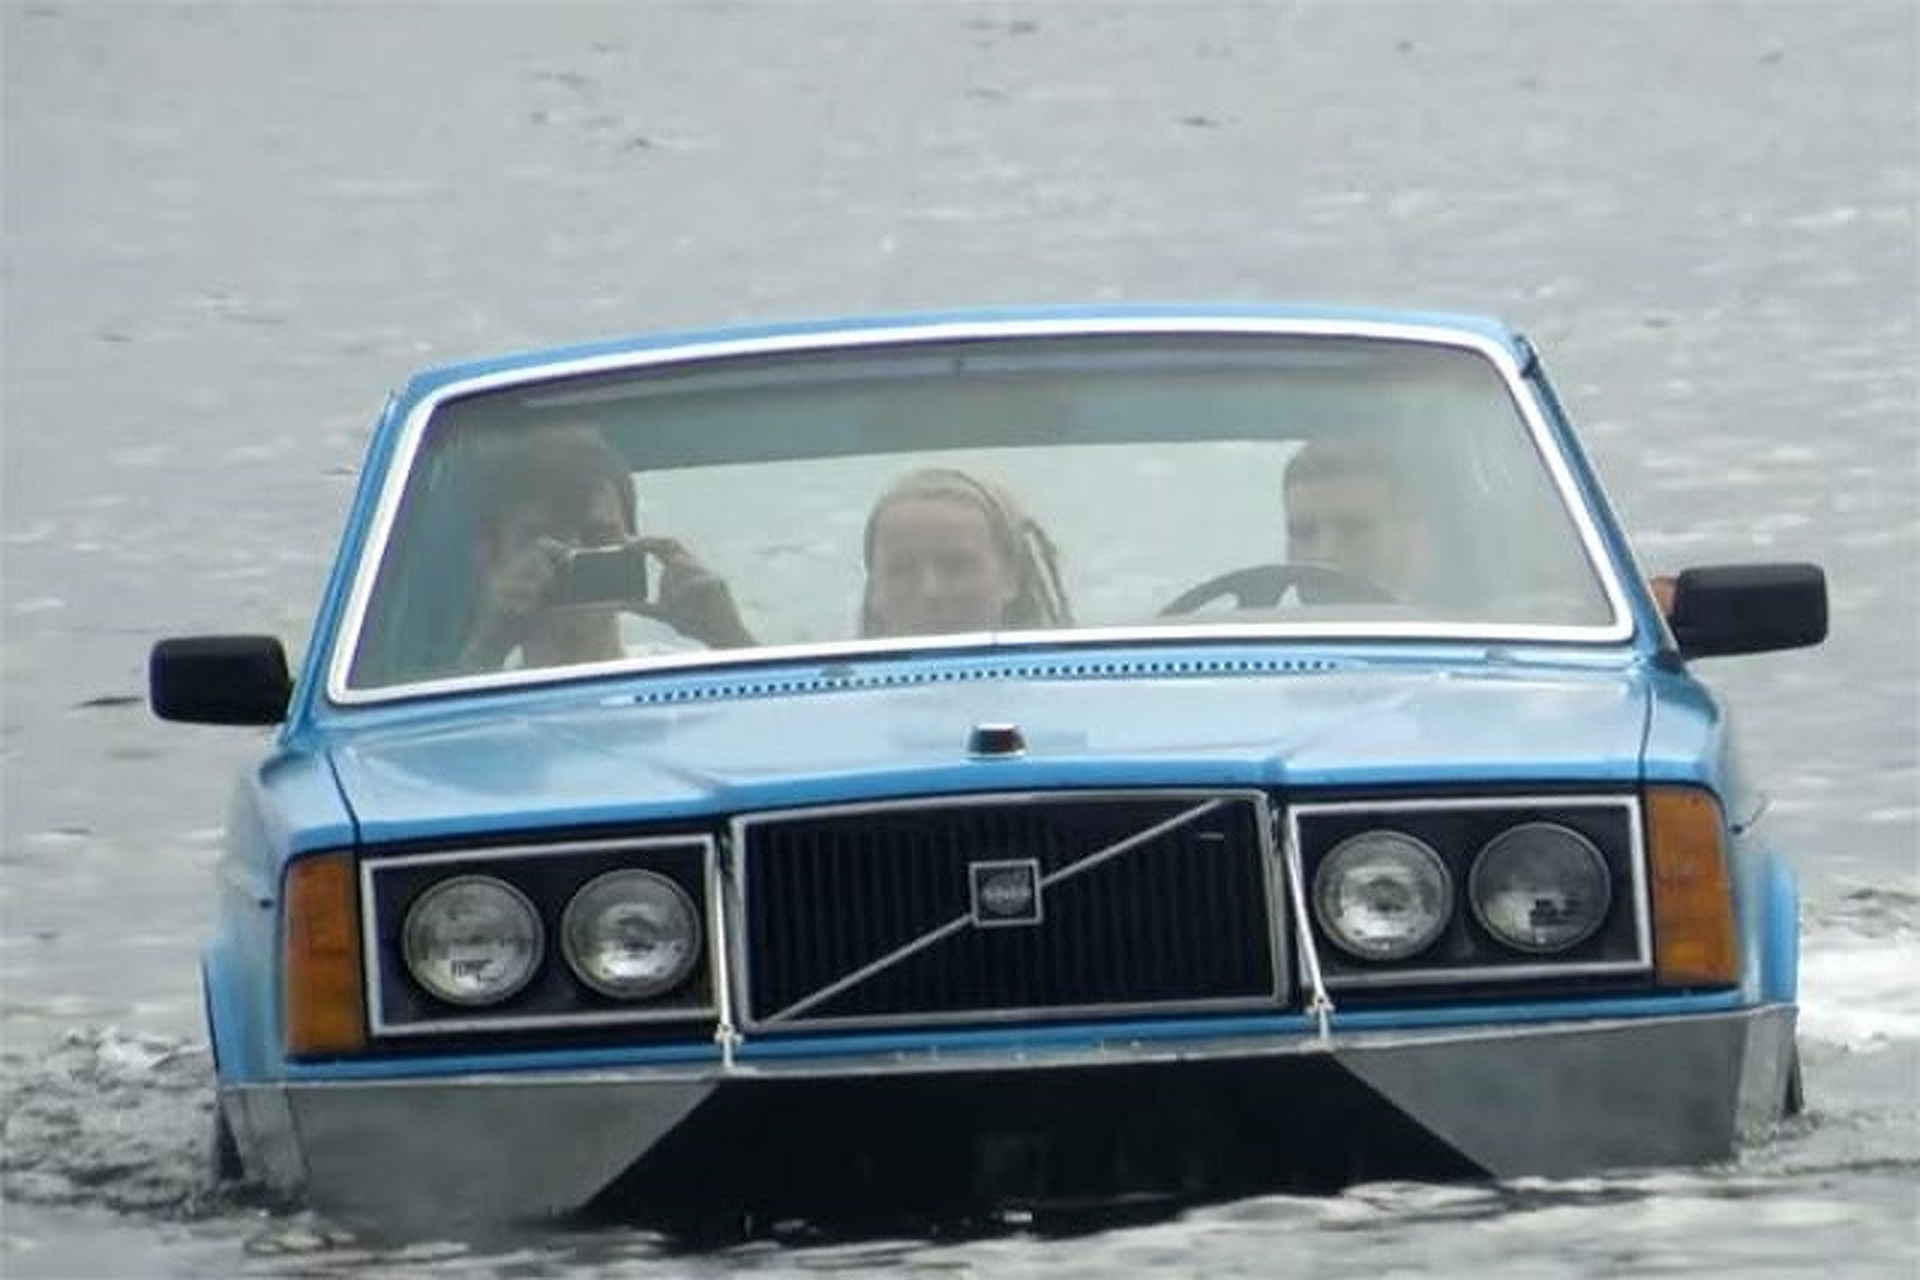 Behold The Wonder of The Volvo Boat [w/Video]